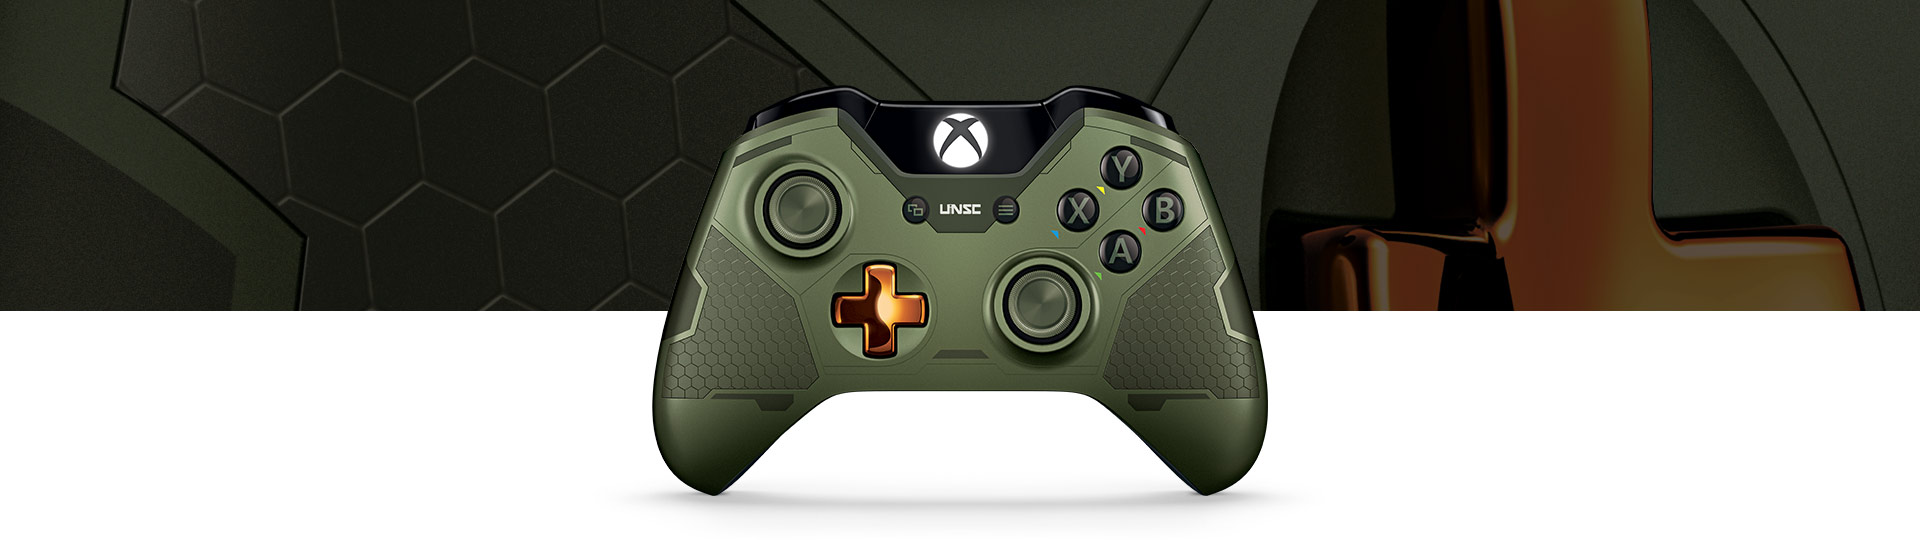 Manette sans fil Xbox One édition limitée Halo 5: Guardians – Master Chief